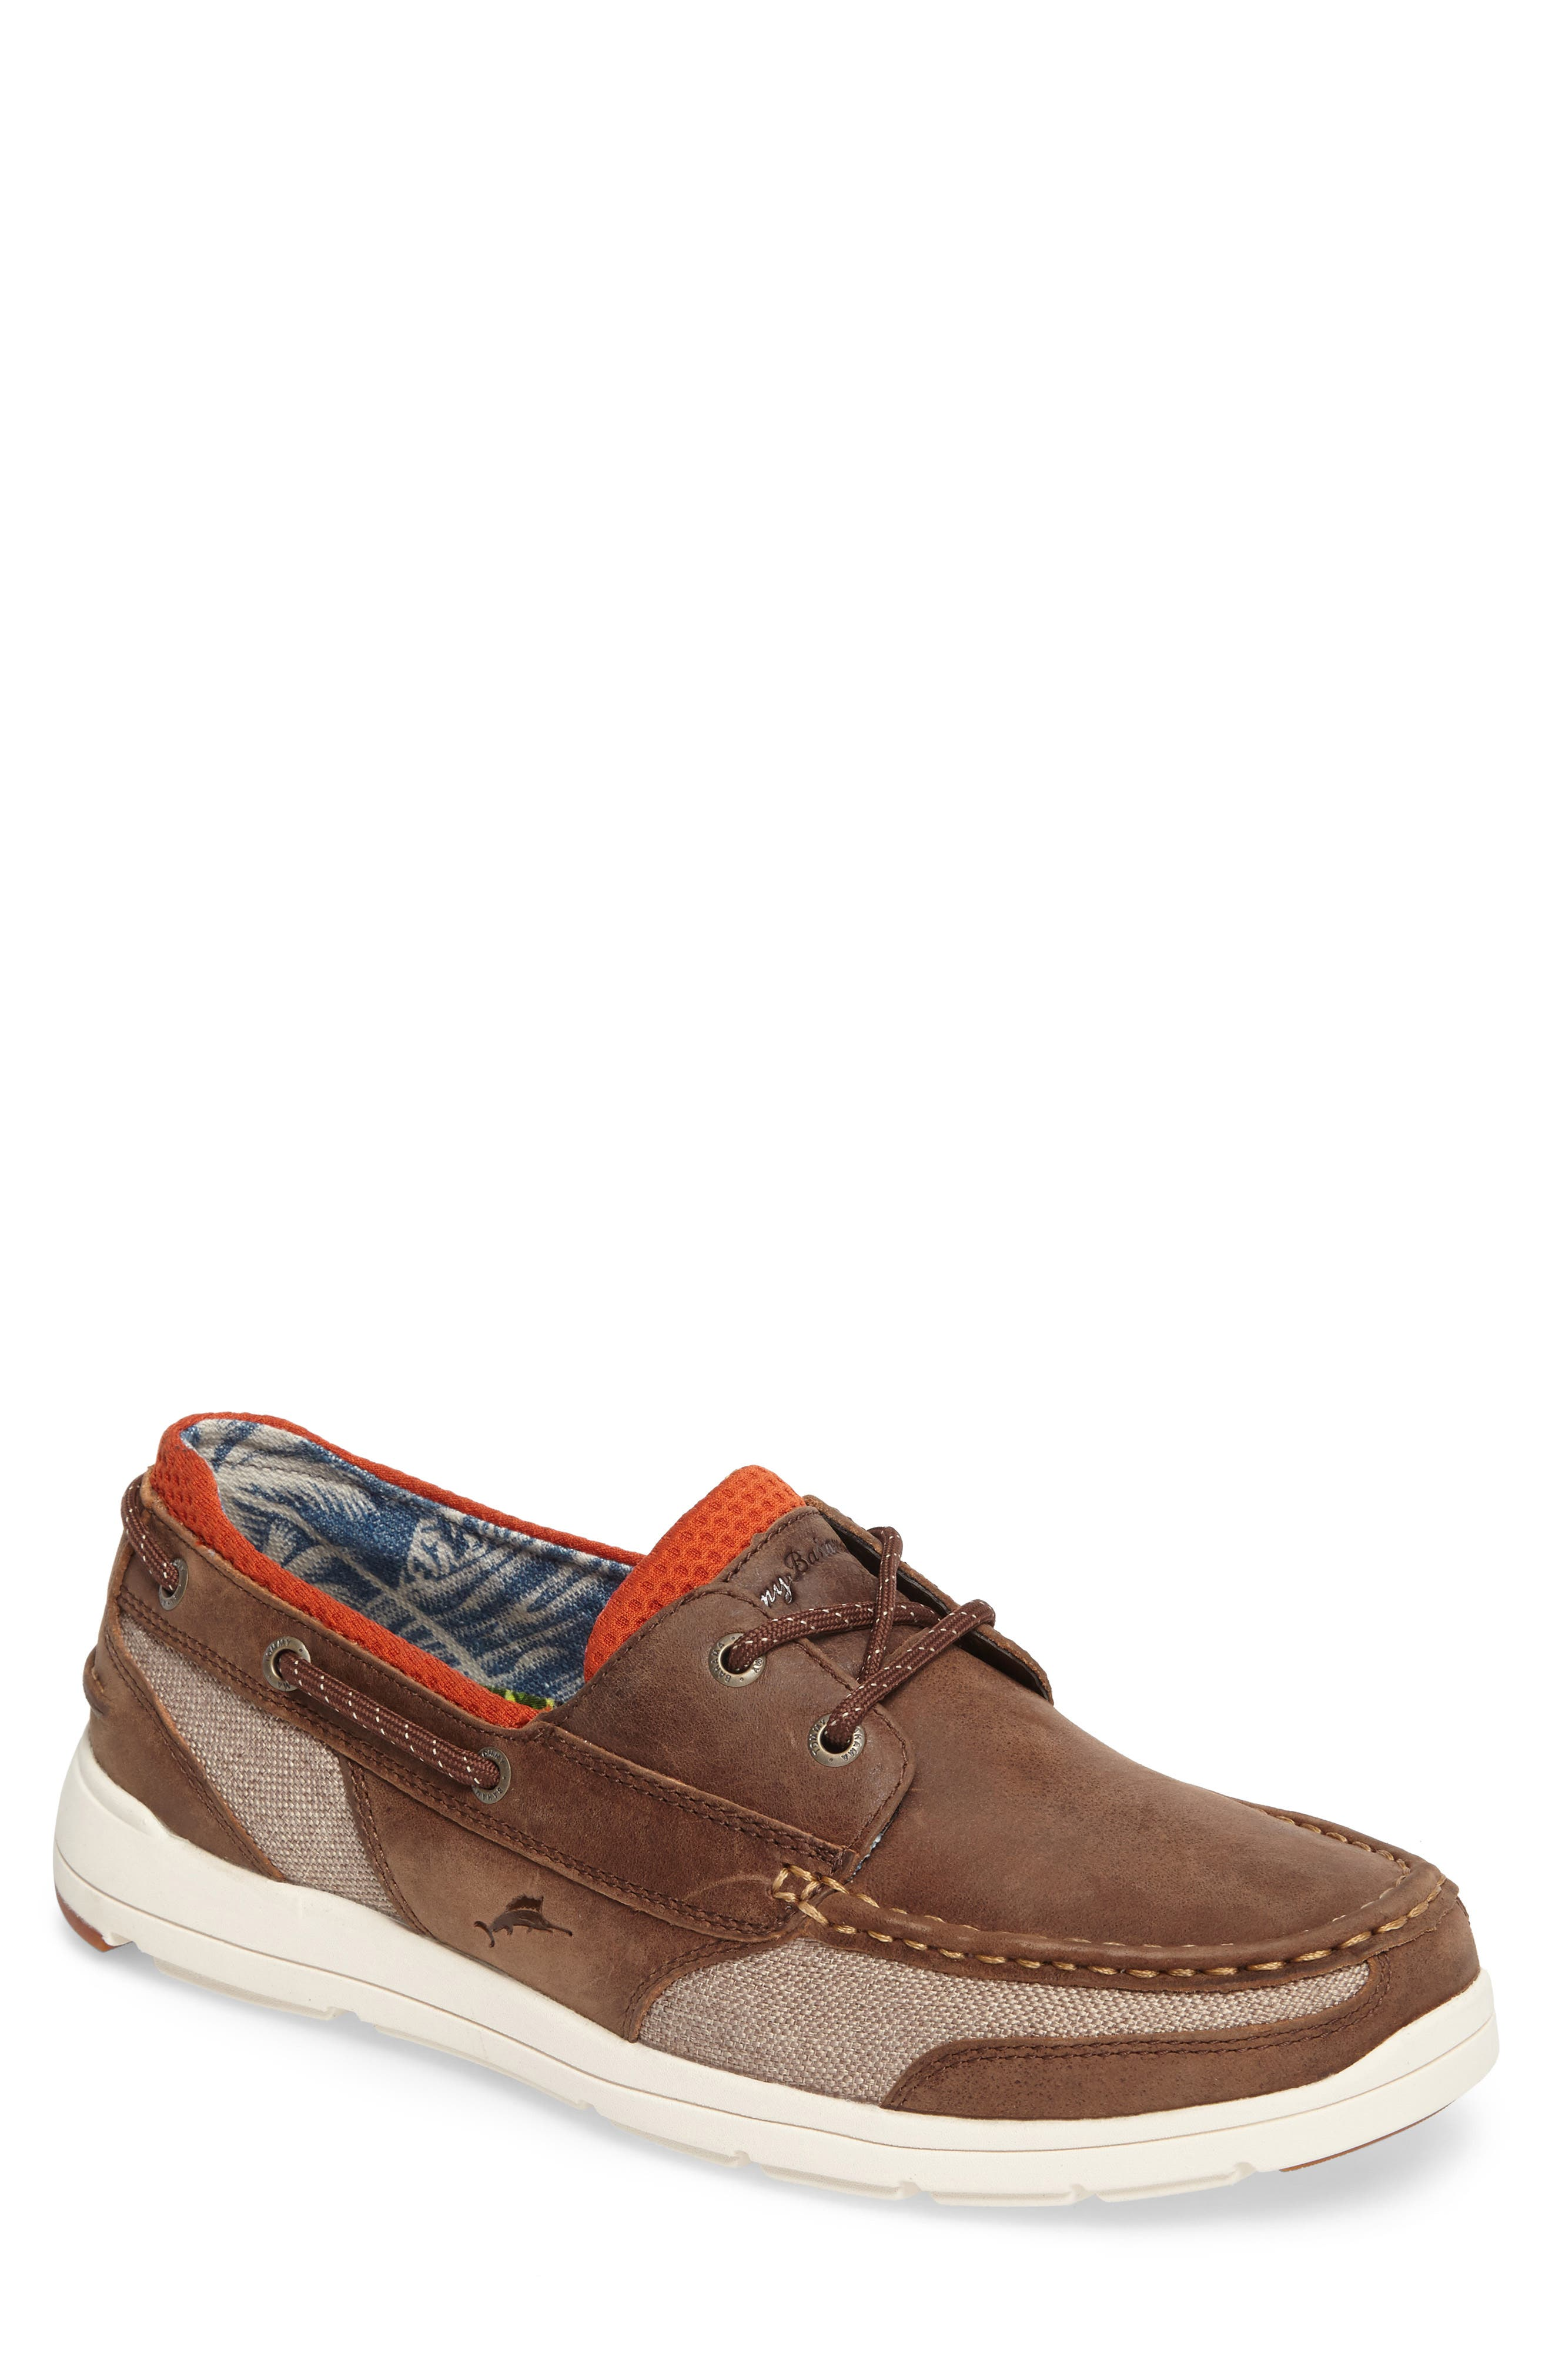 Spectator Boat Shoe,                             Main thumbnail 1, color,                             Dark Brown Leather/ Mesh